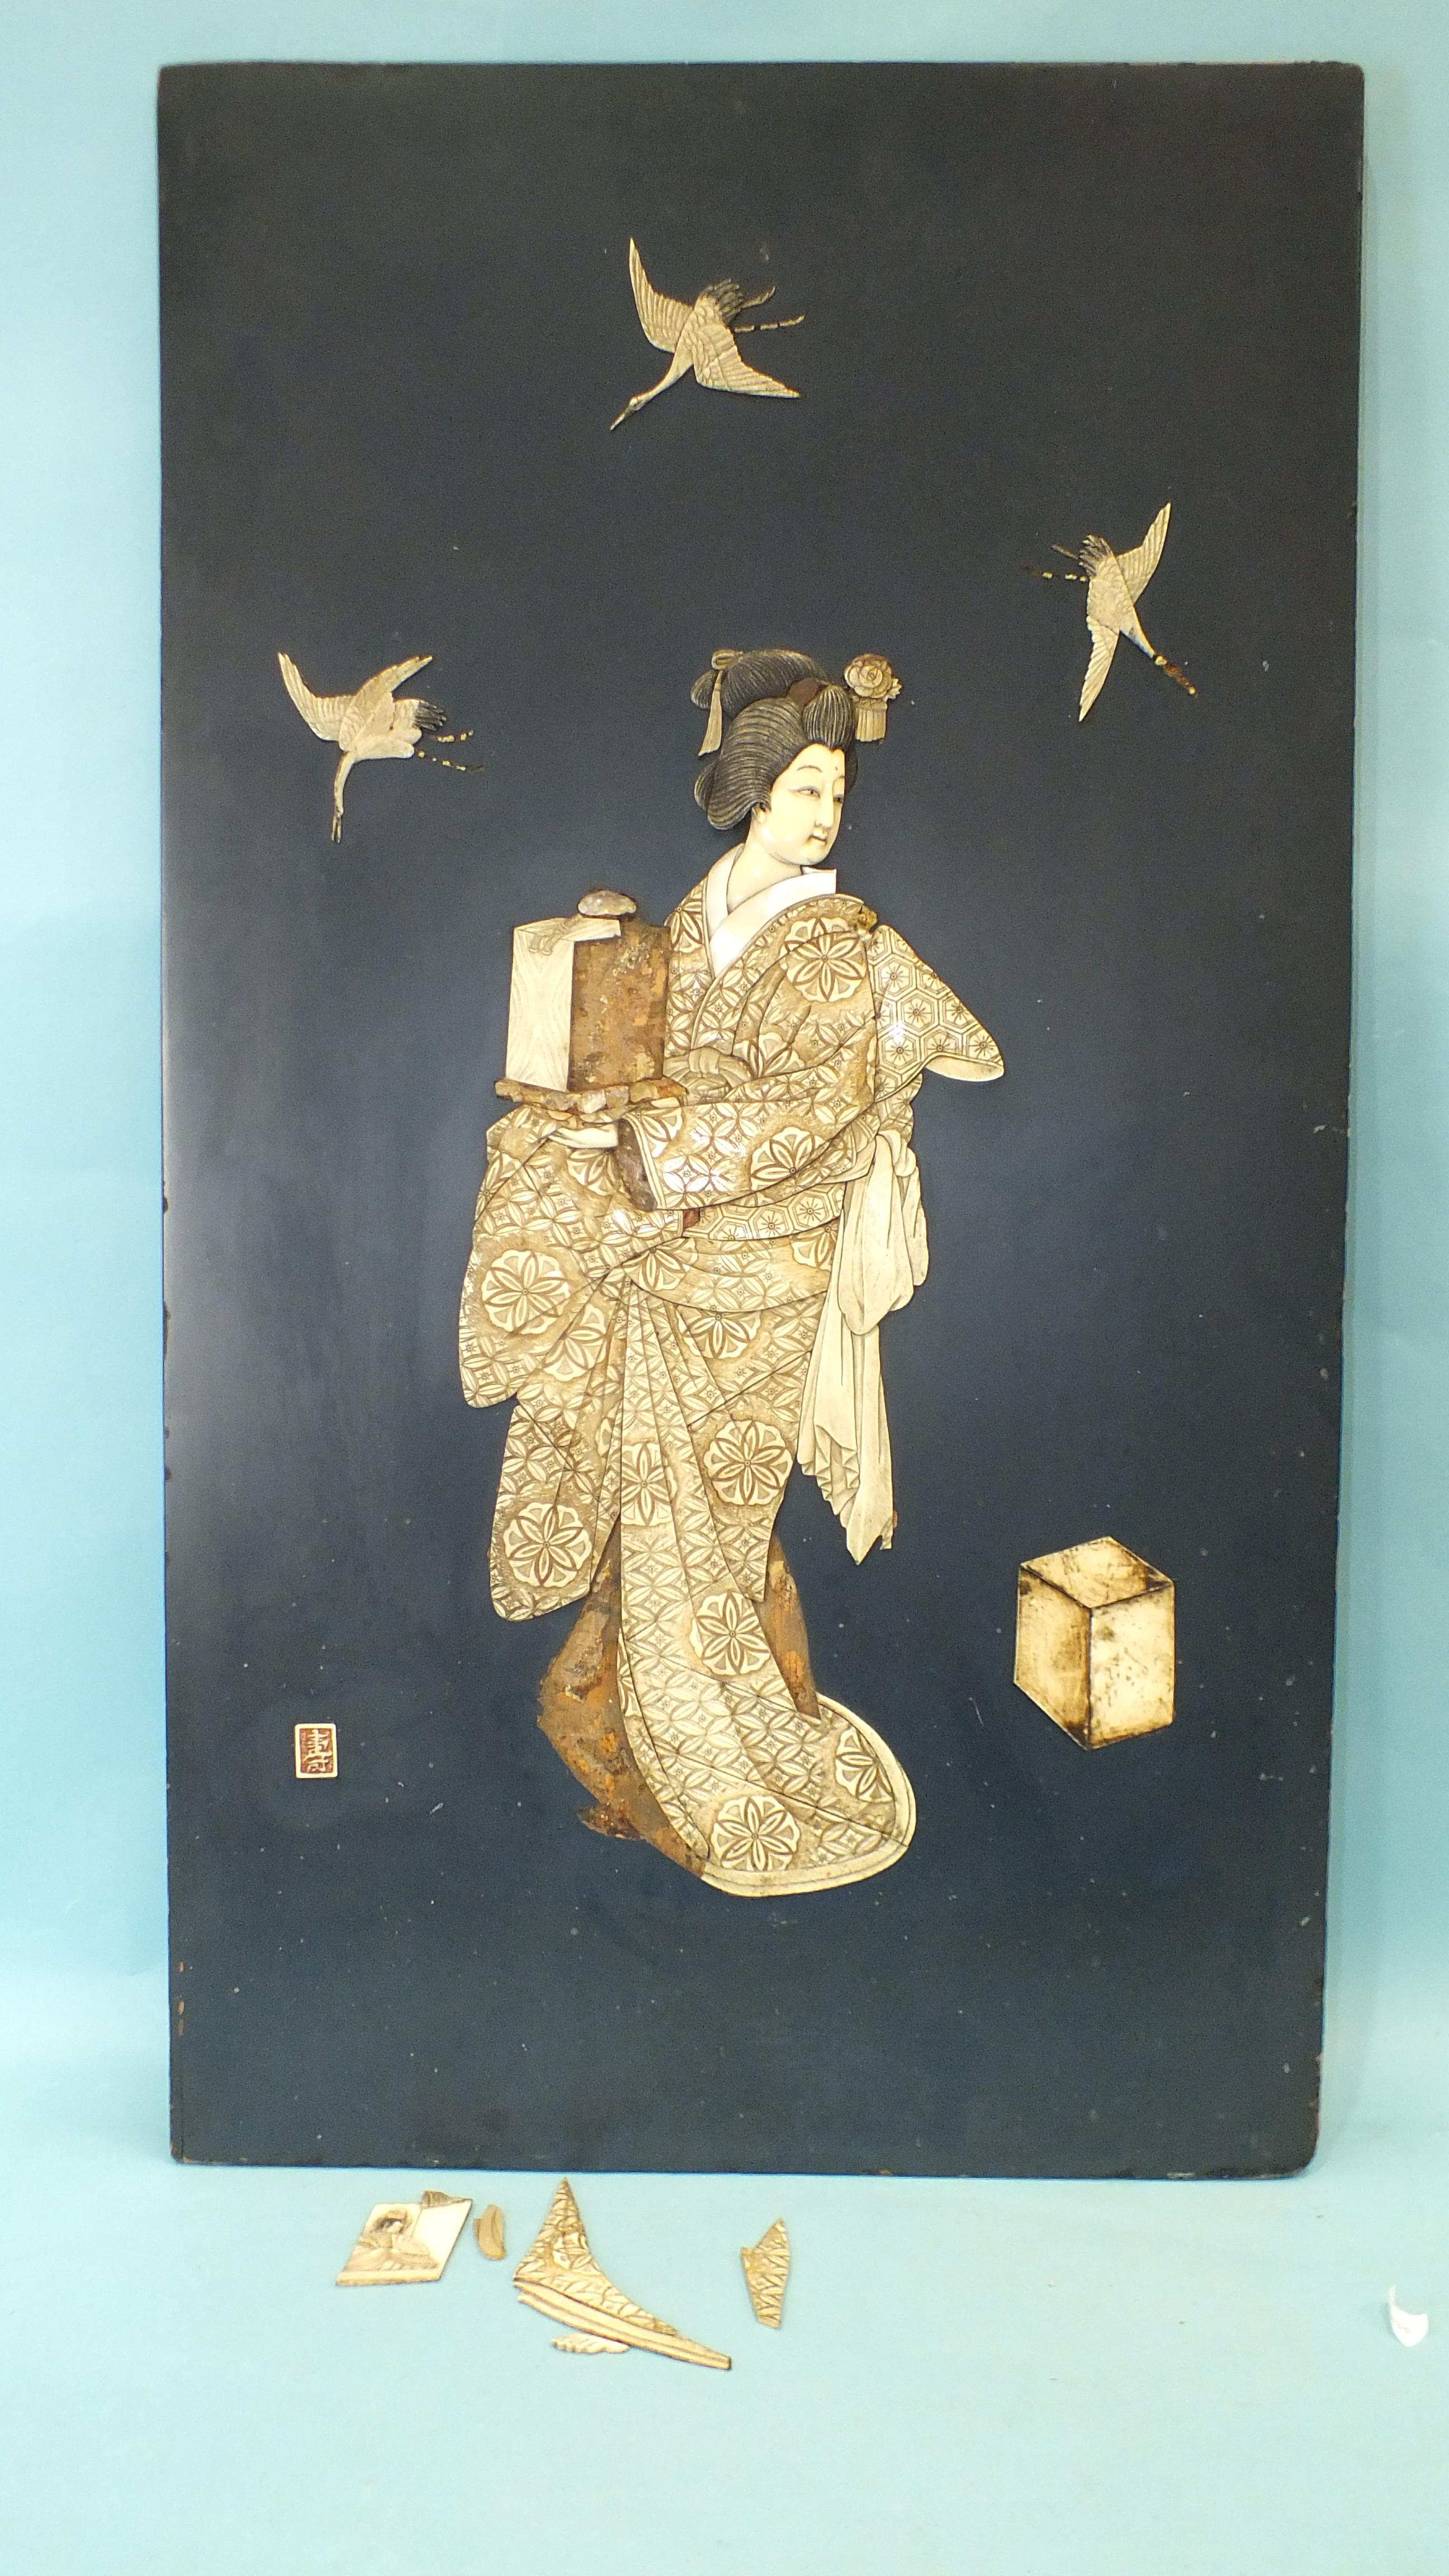 An early-20th century Japanese lacquered panel with applied carved ivory, bone and mother-of-pearl